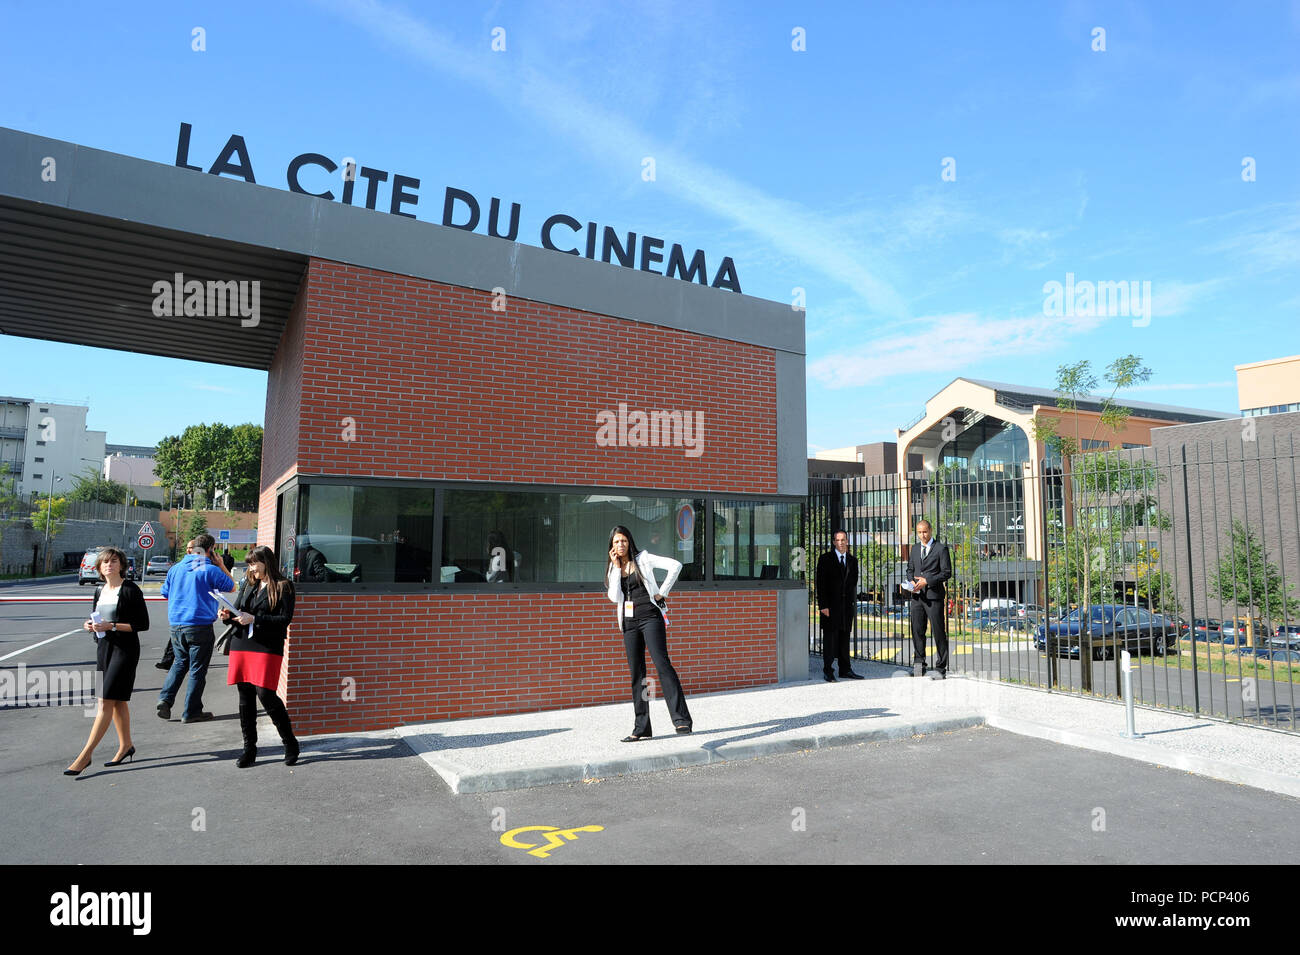 September 21, 2012 - Saint-Denis, France: French filmmaker Luc Besson unveils his 'cinema city' (Cite du Cinema) on the edge of Paris. The 170-million-euros project is the largest film studio facility ever built in France, which earned it the nickname 'Hollywood on Seine'. The former art deco power station compound houses nine state-of-the-art film sets, 20,000sq metres of office, and several carpentry, model-making, and costume workshops *** FRANCE OUT / NO SALES TO FRENCH MEDIA *** - Stock Image